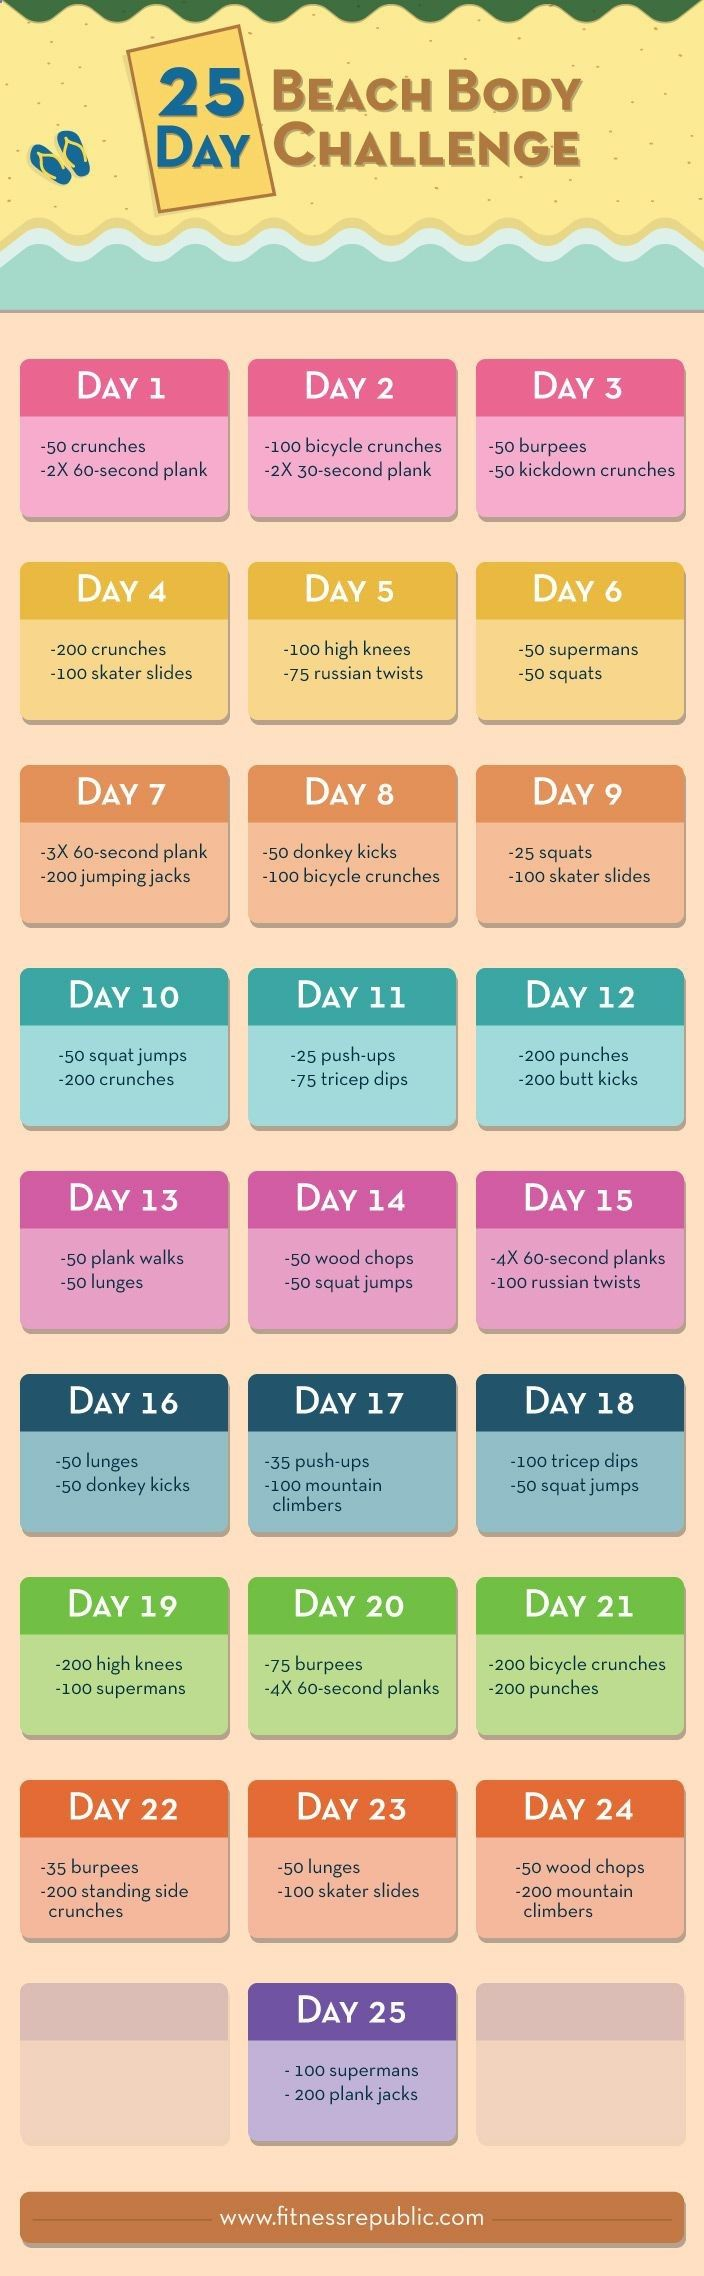 25 Day Beach Body Challenge. Though beach season has ended, is still important to not give up all your hard work youve done this far. Anyone wanna try it?